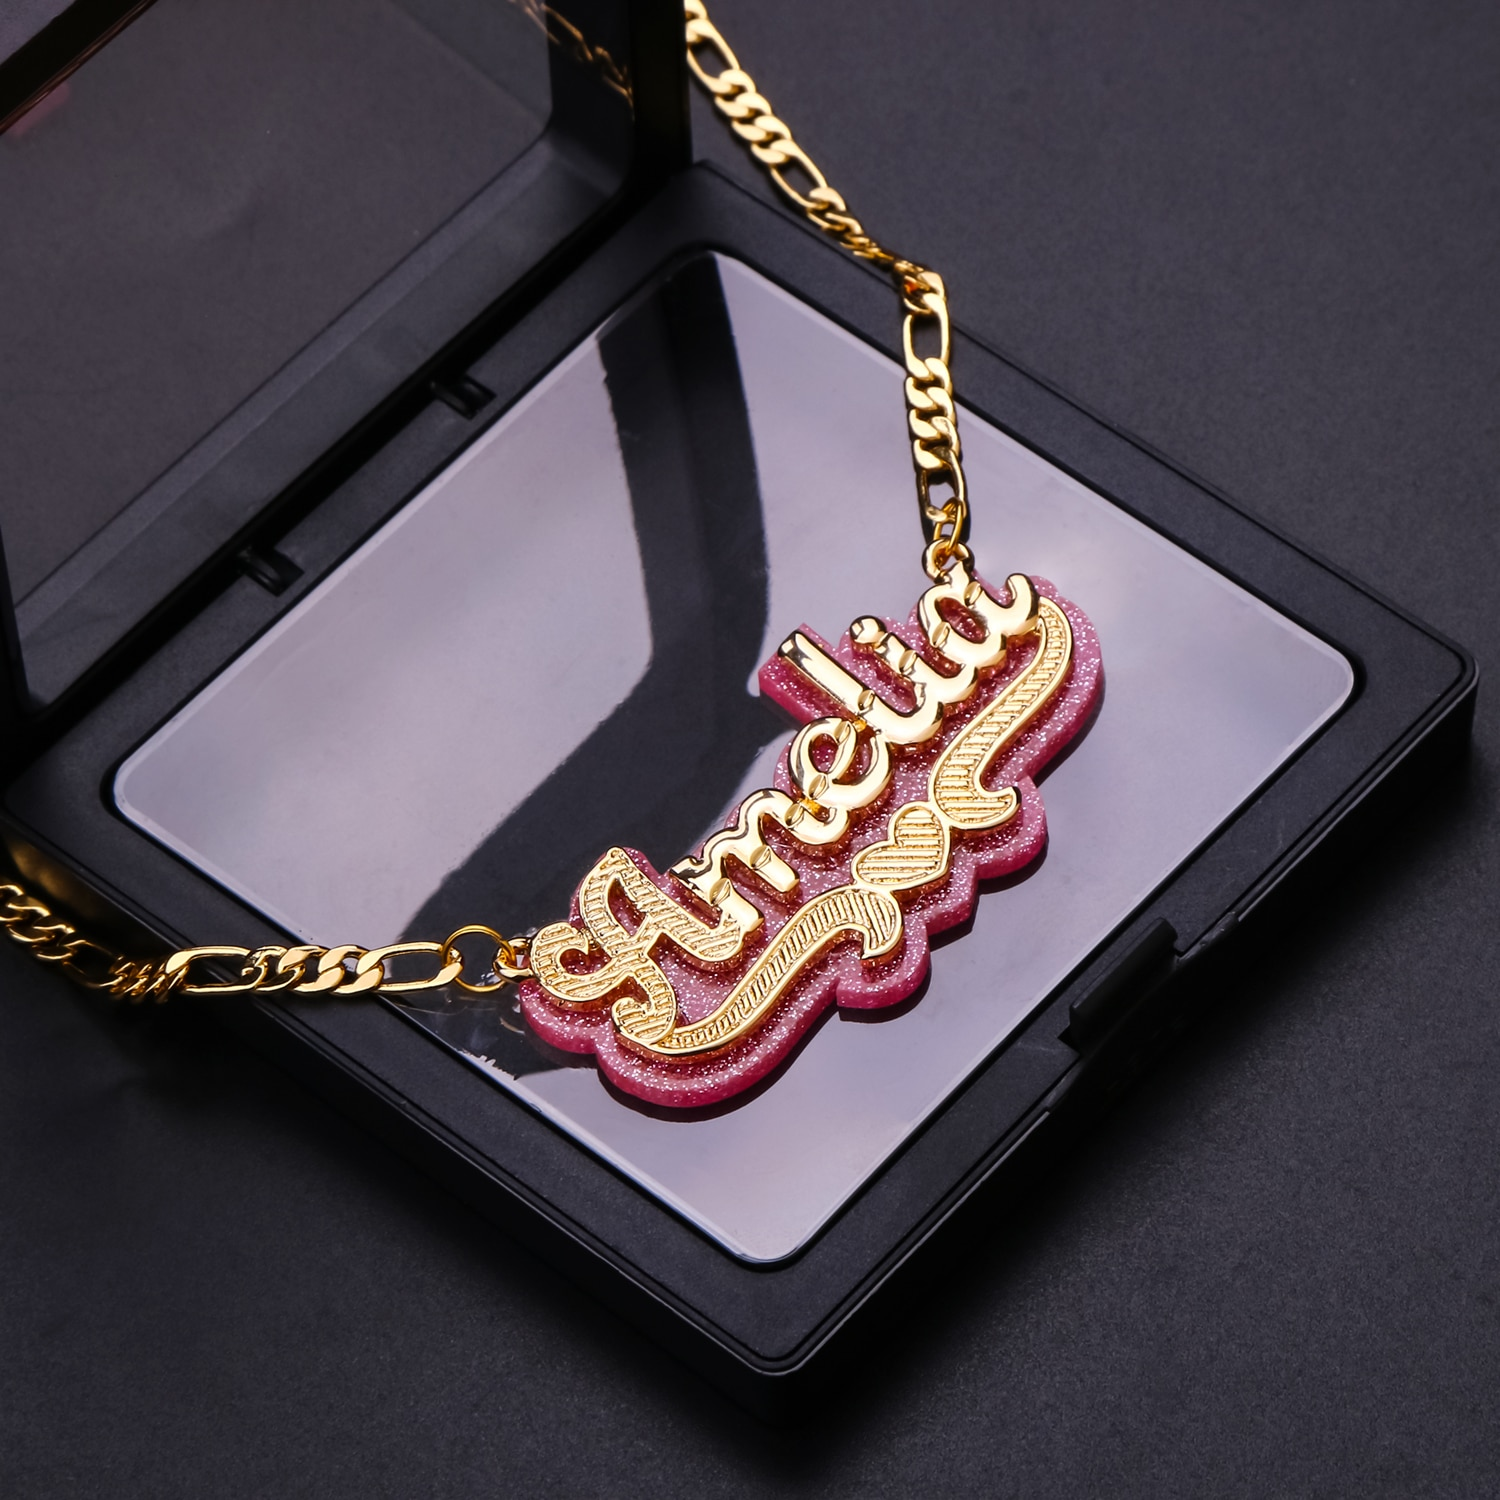 Customized Name Necklace Personalized Acrylic Letter With Name Custom Name Necklaces Pendants Jewelry Nameplate Chain Women Gift wholesale rose name necklace with crystal decoration personalized silver nameplate pendent celebrity party jewelry gift